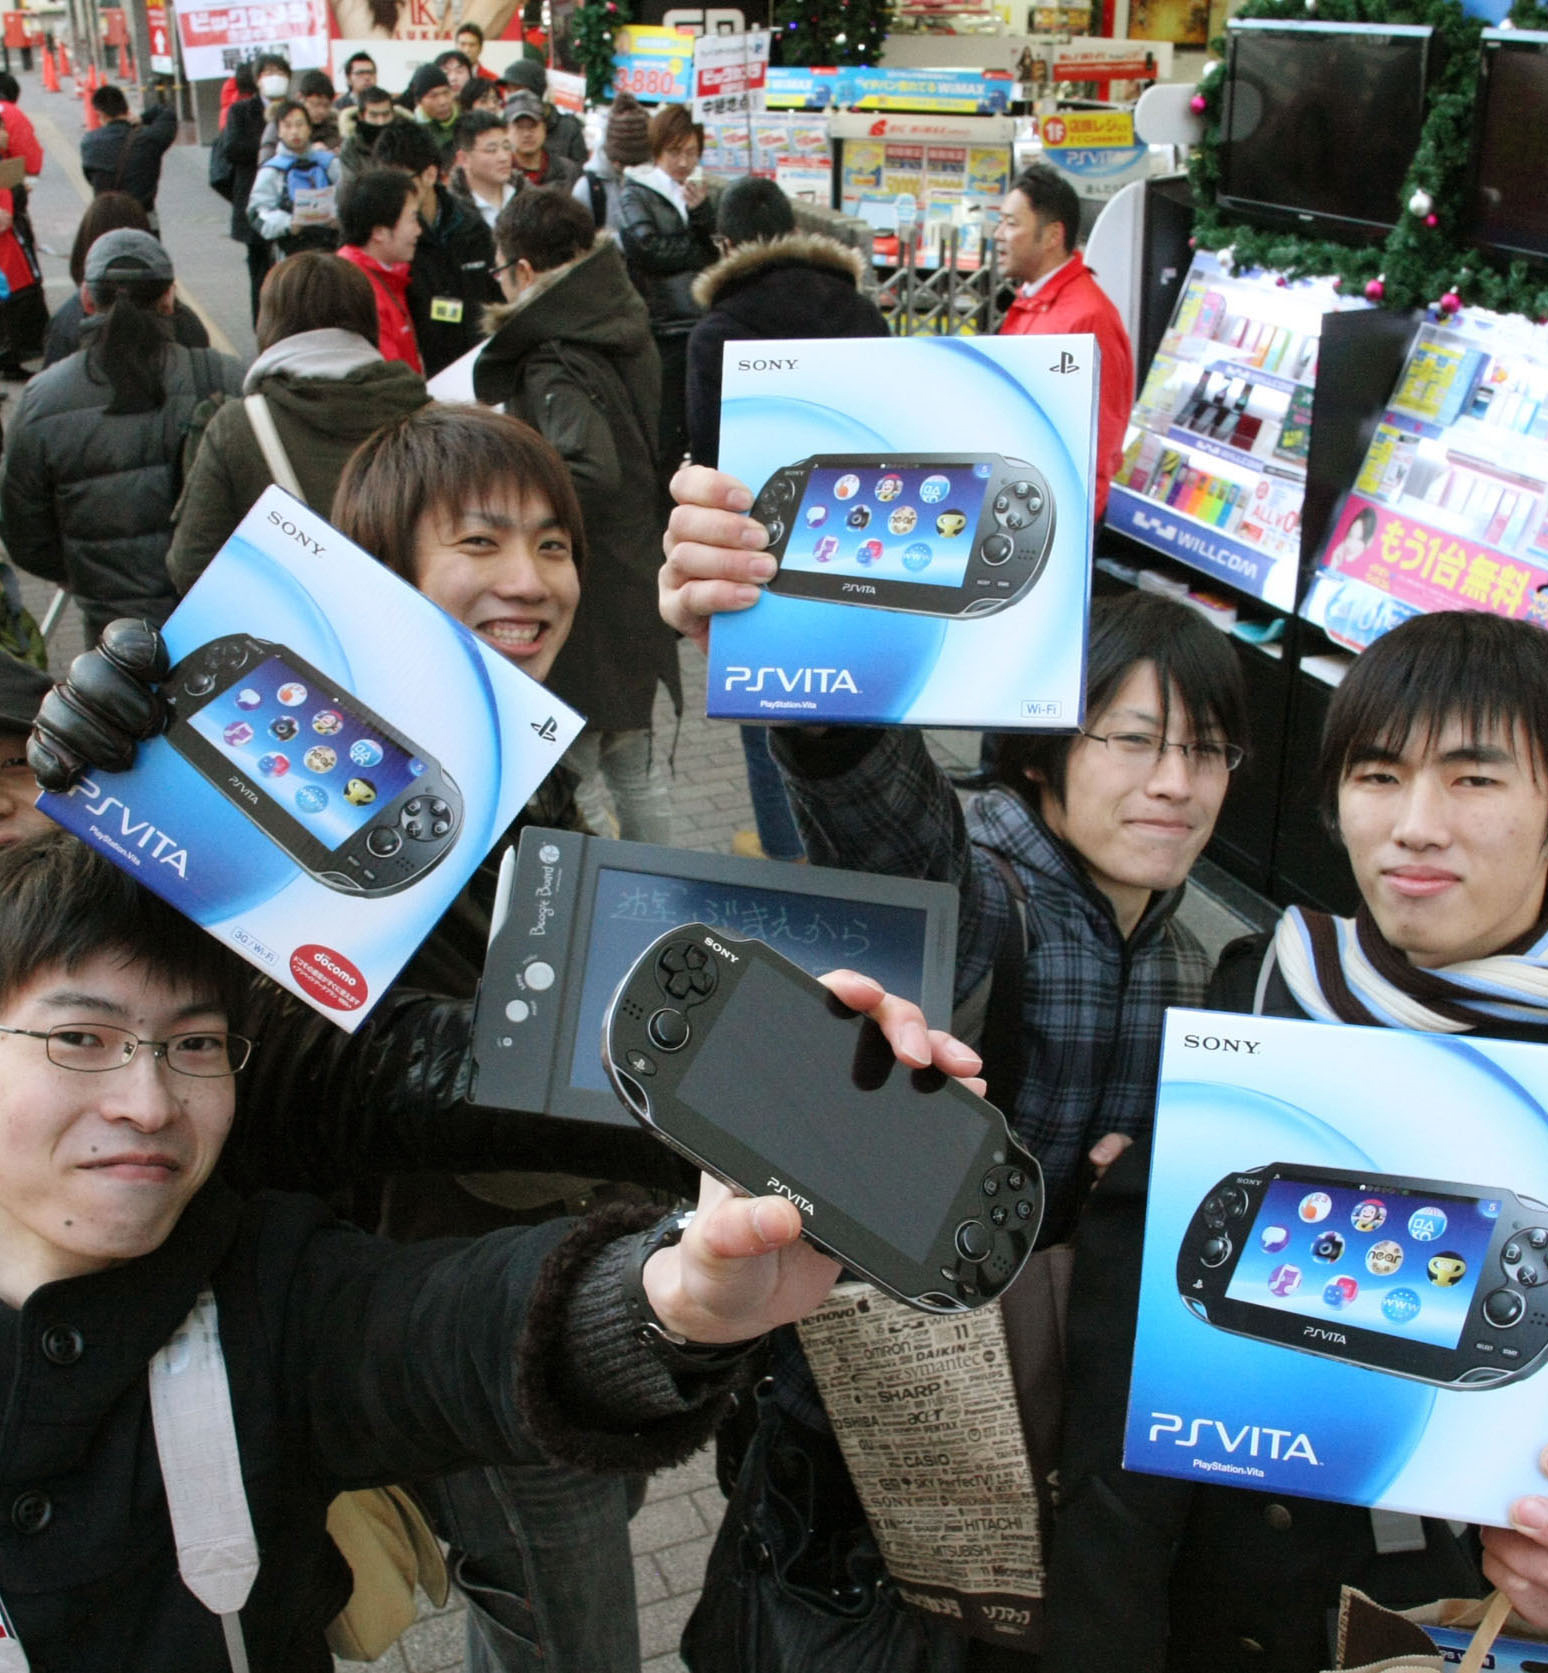 La dolce vita: Game enthusiasts show off Sony's new PlayStation Vita consoles they purchased at a Tokyo store on Dec. 17, the first day the hand-held players went on sale. | KYODO